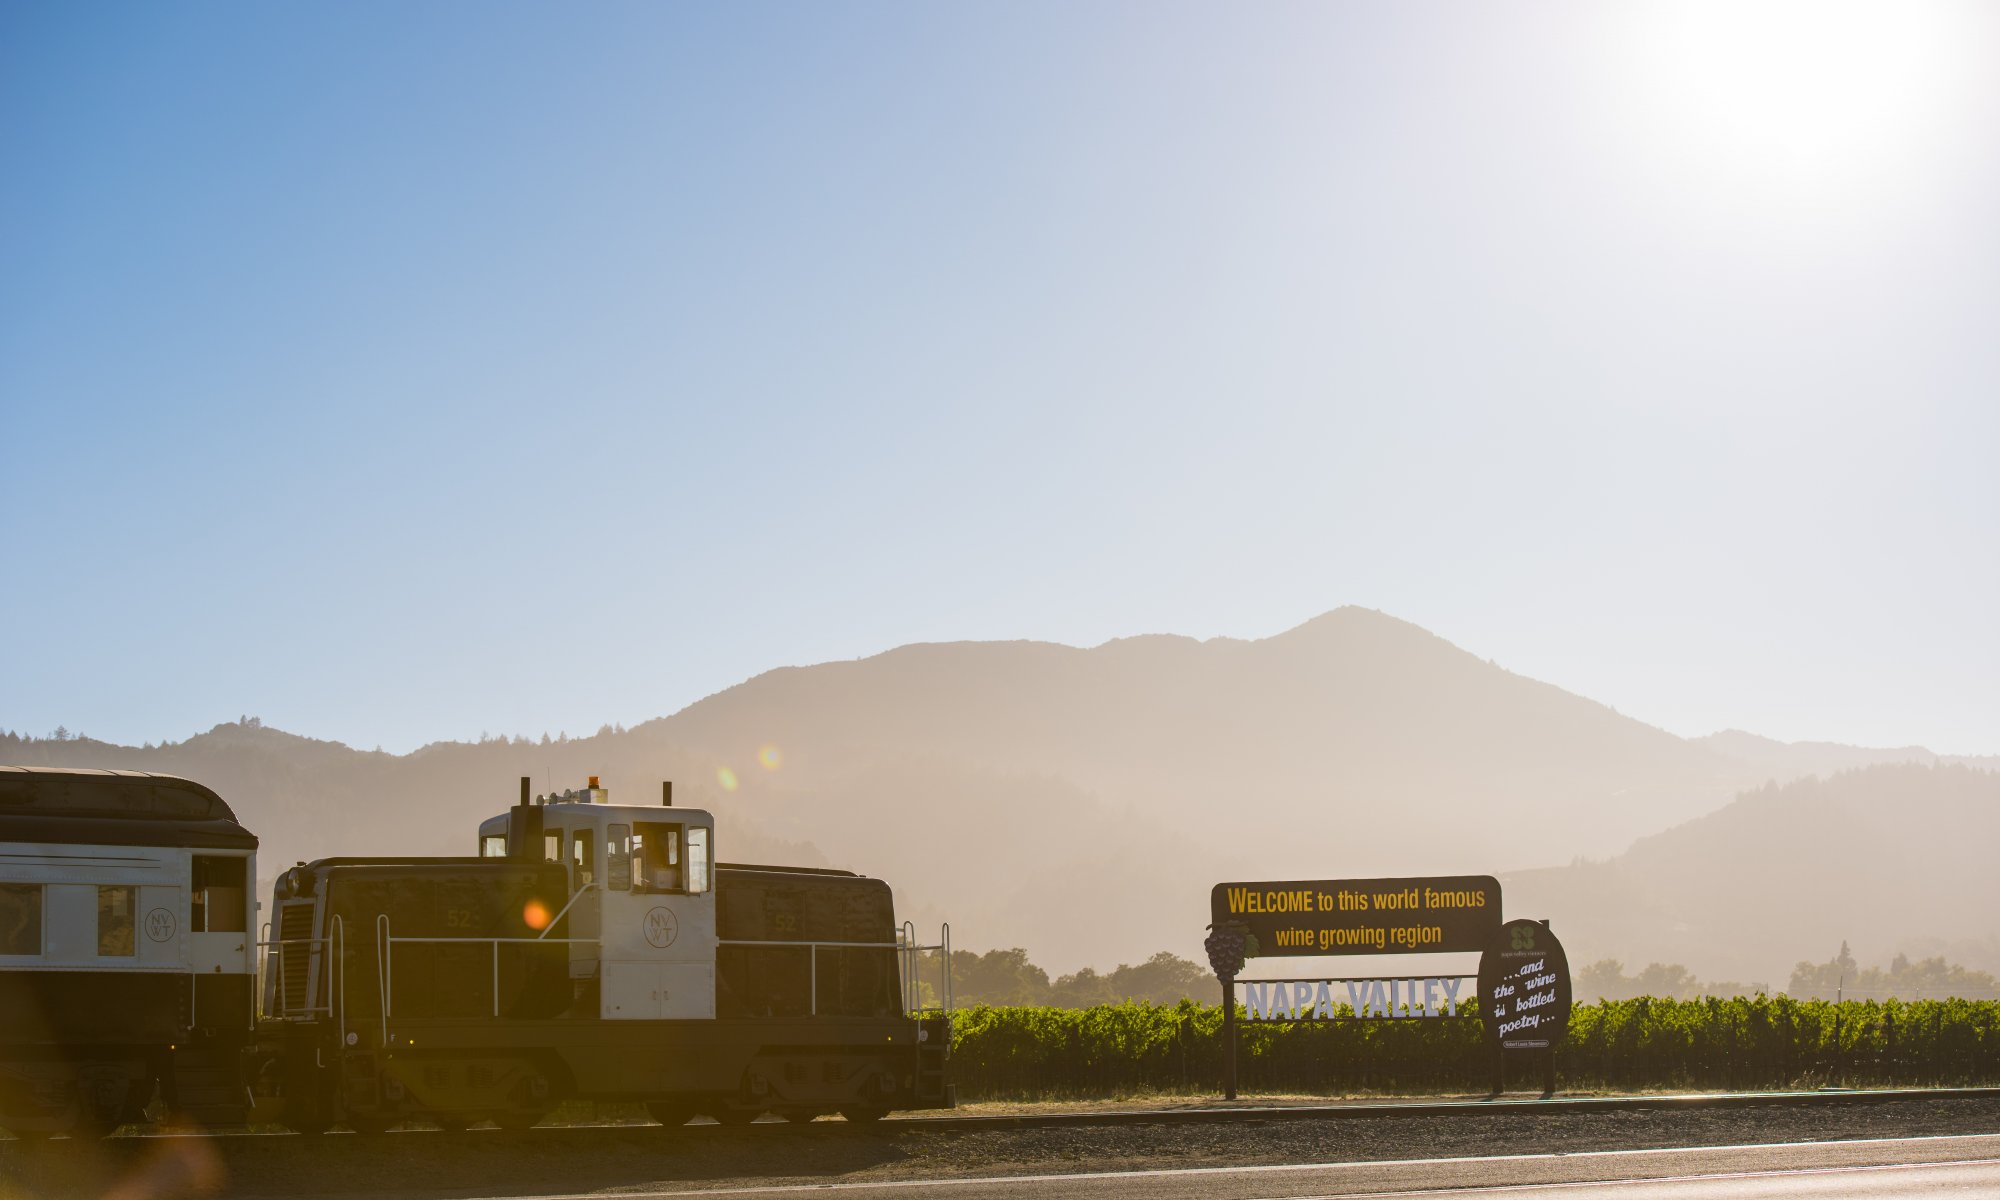 The Napa Valley Wine Train engine next to a Welcome to Napa sign with mountains in background